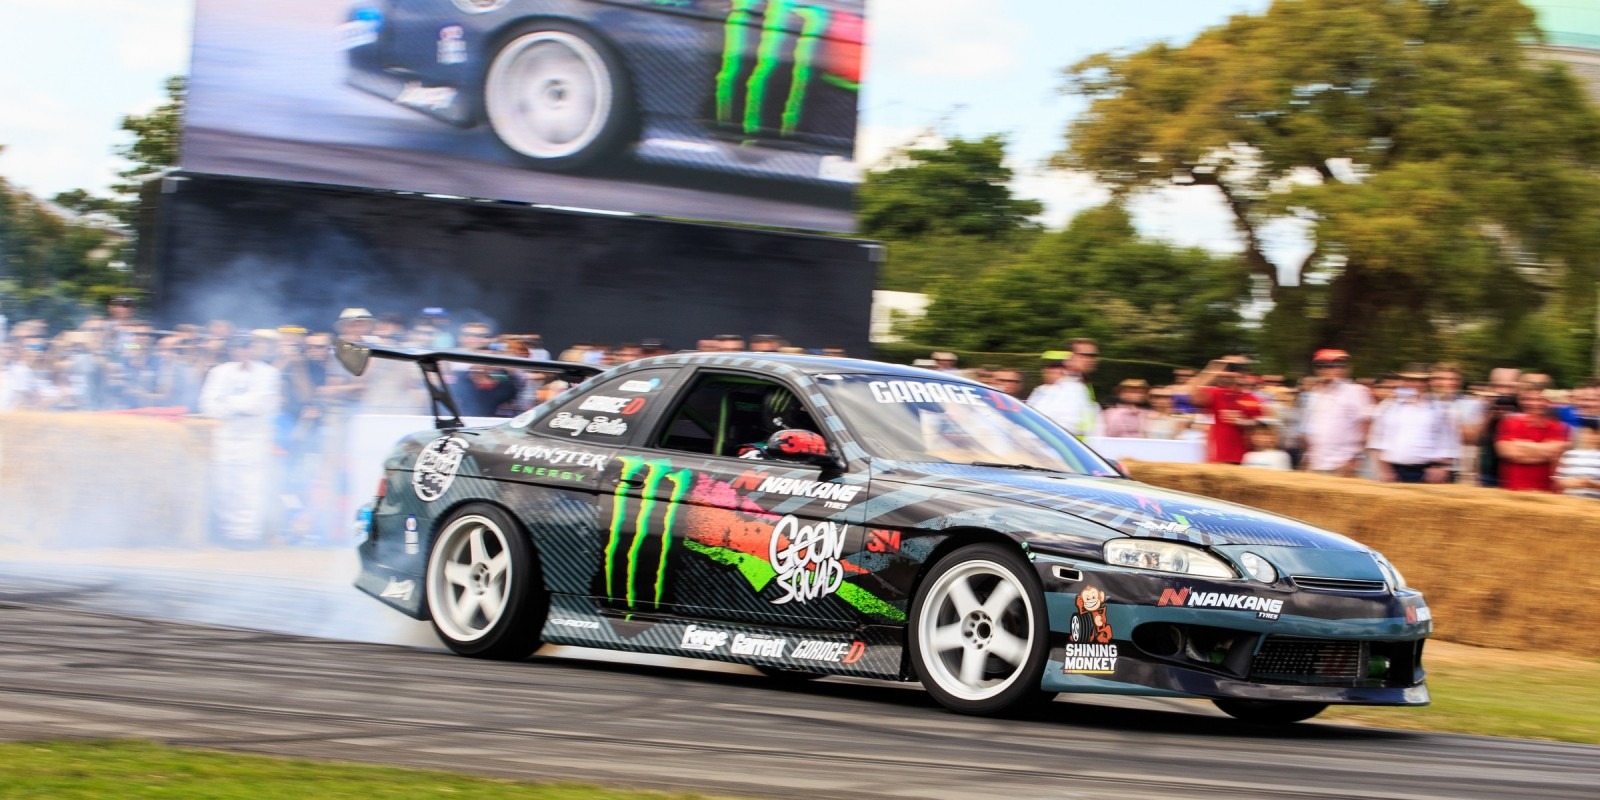 Buttsy Butler at Goodwood FOS